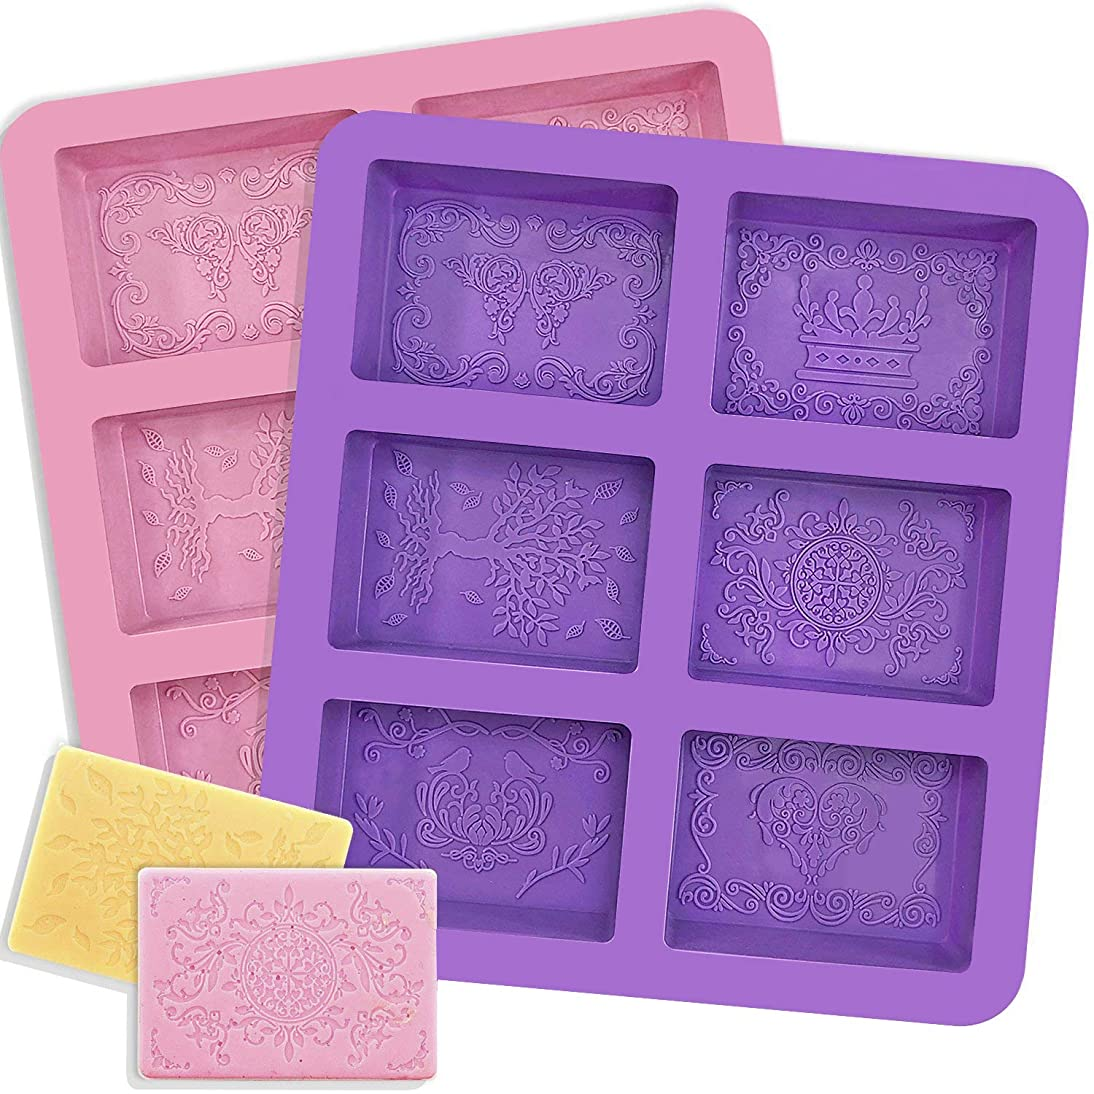 YGEOMER Rectangle Silicone Soap Molds, 2pcs 6 Cavities Molds, 12 Mixed Patterns, for Making Soaps, Ice Cubes